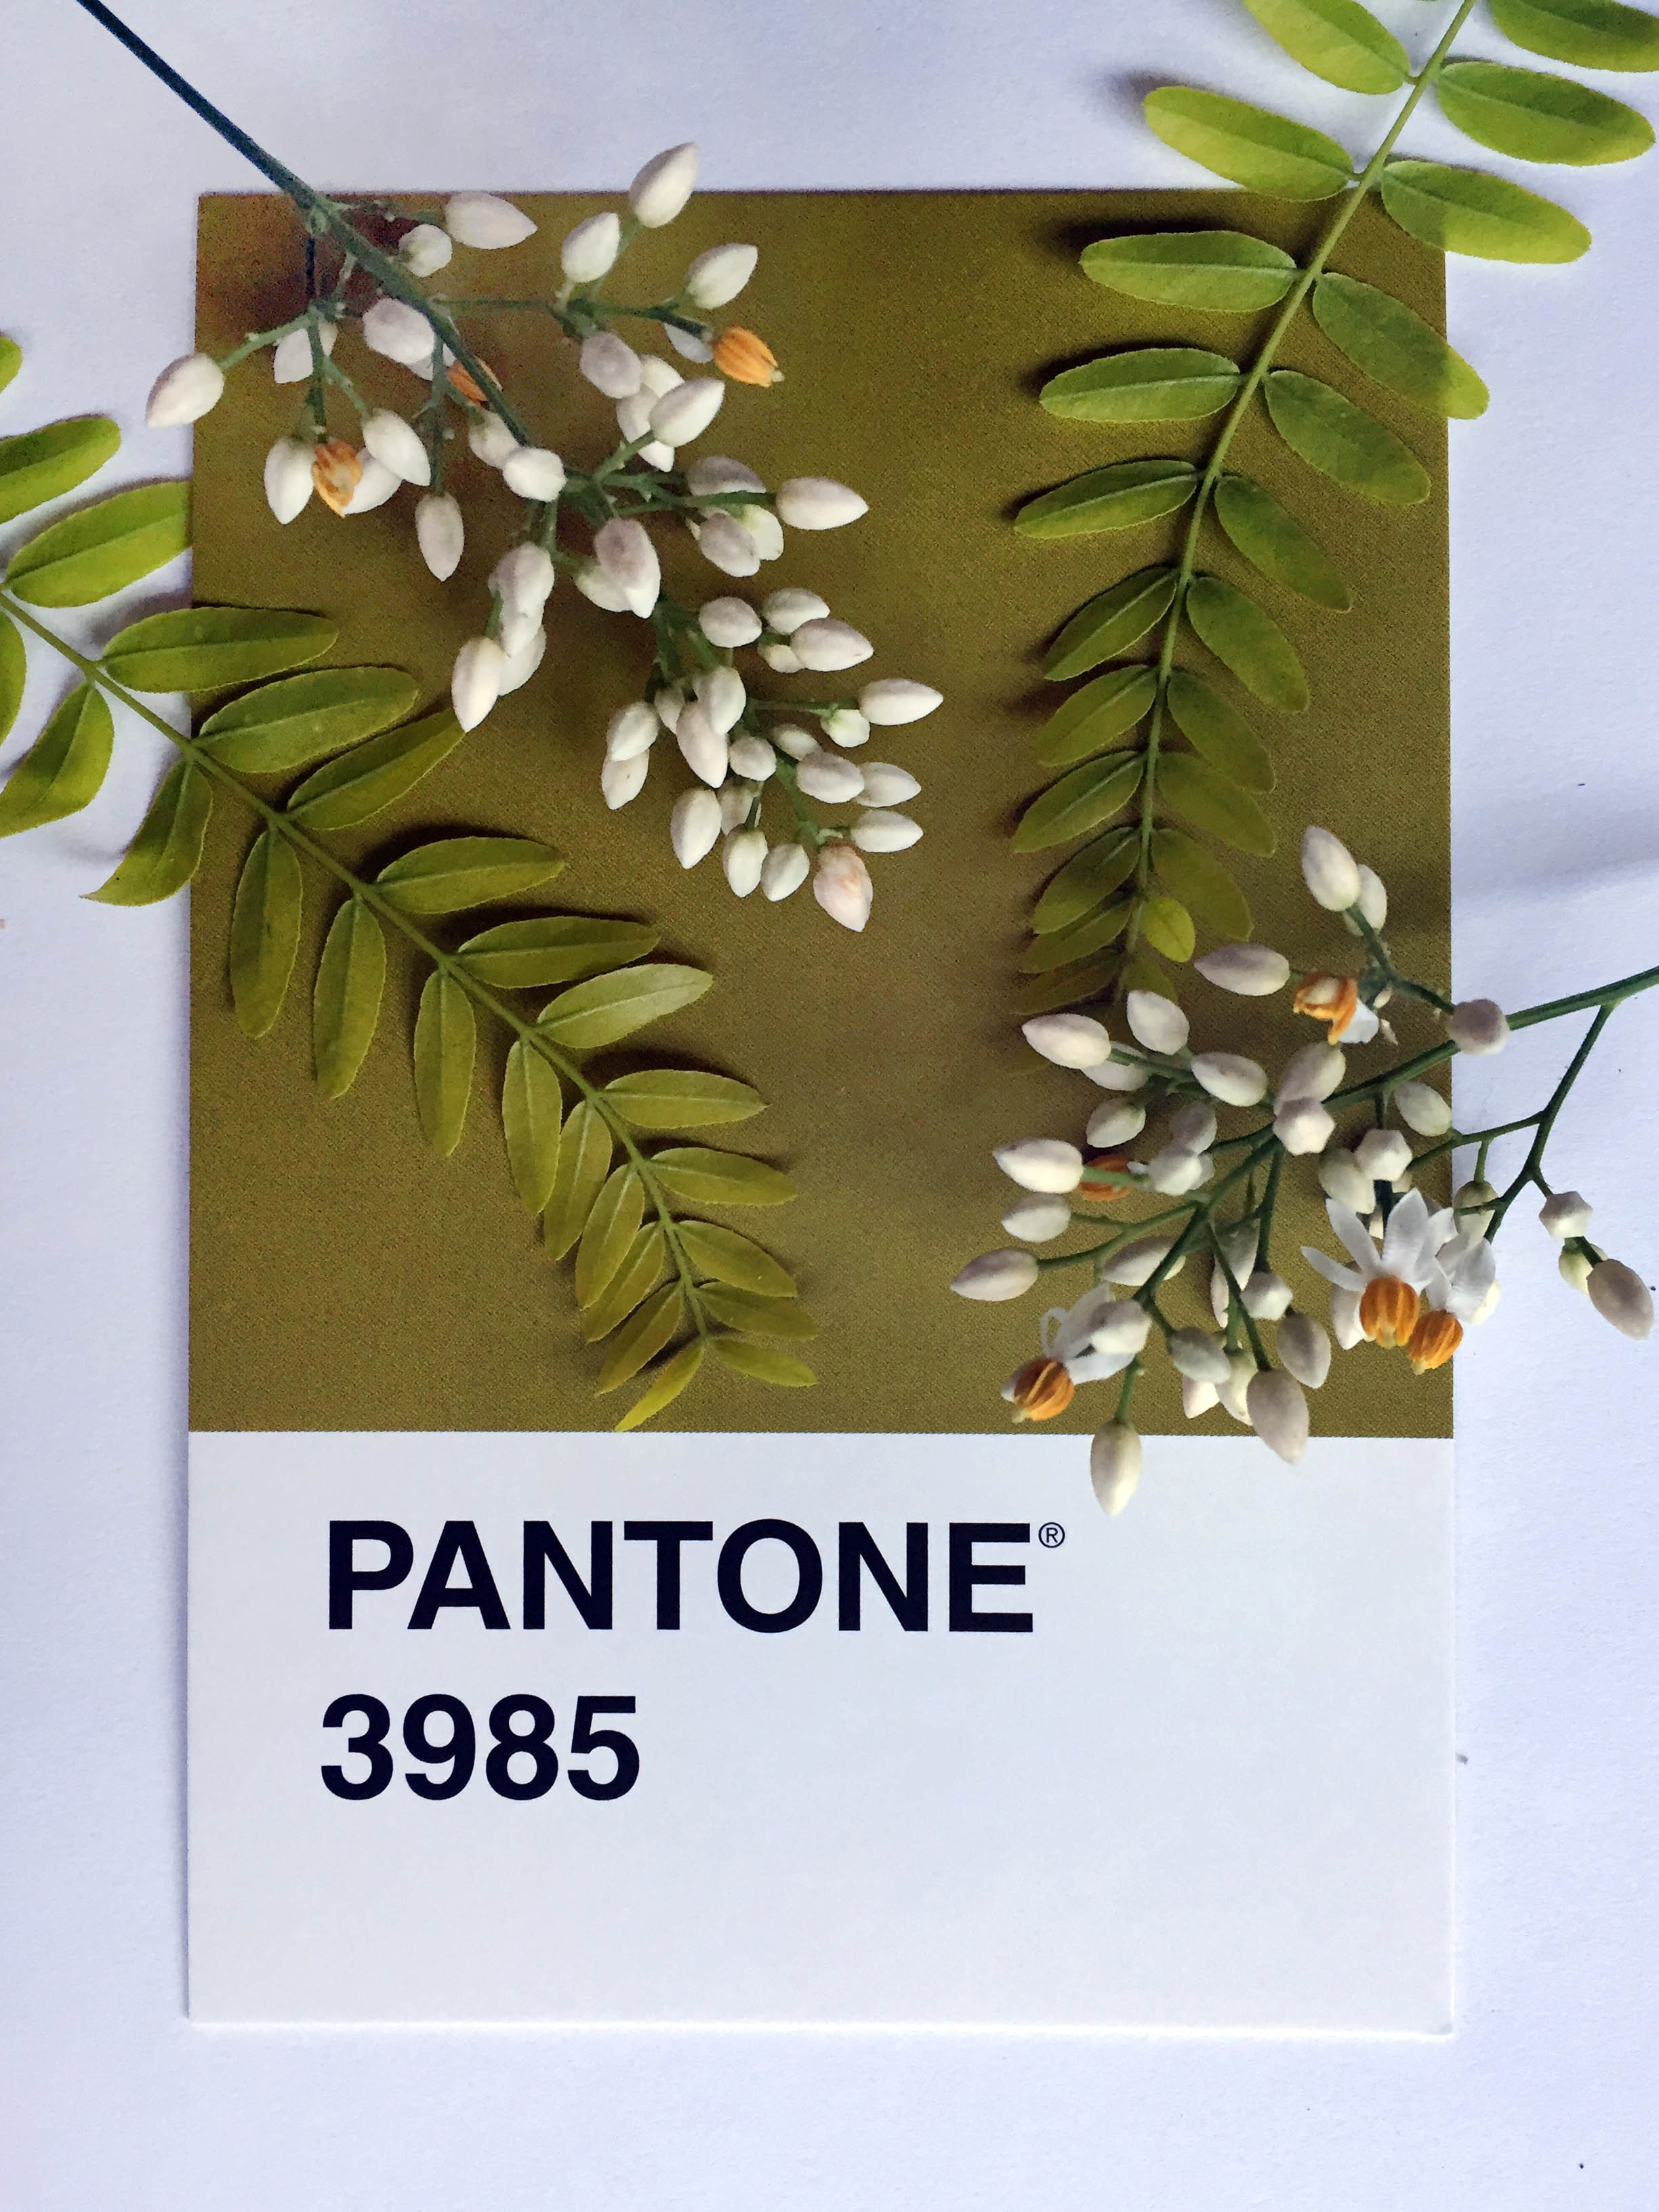 green and white plants on Pantone 3985 poster